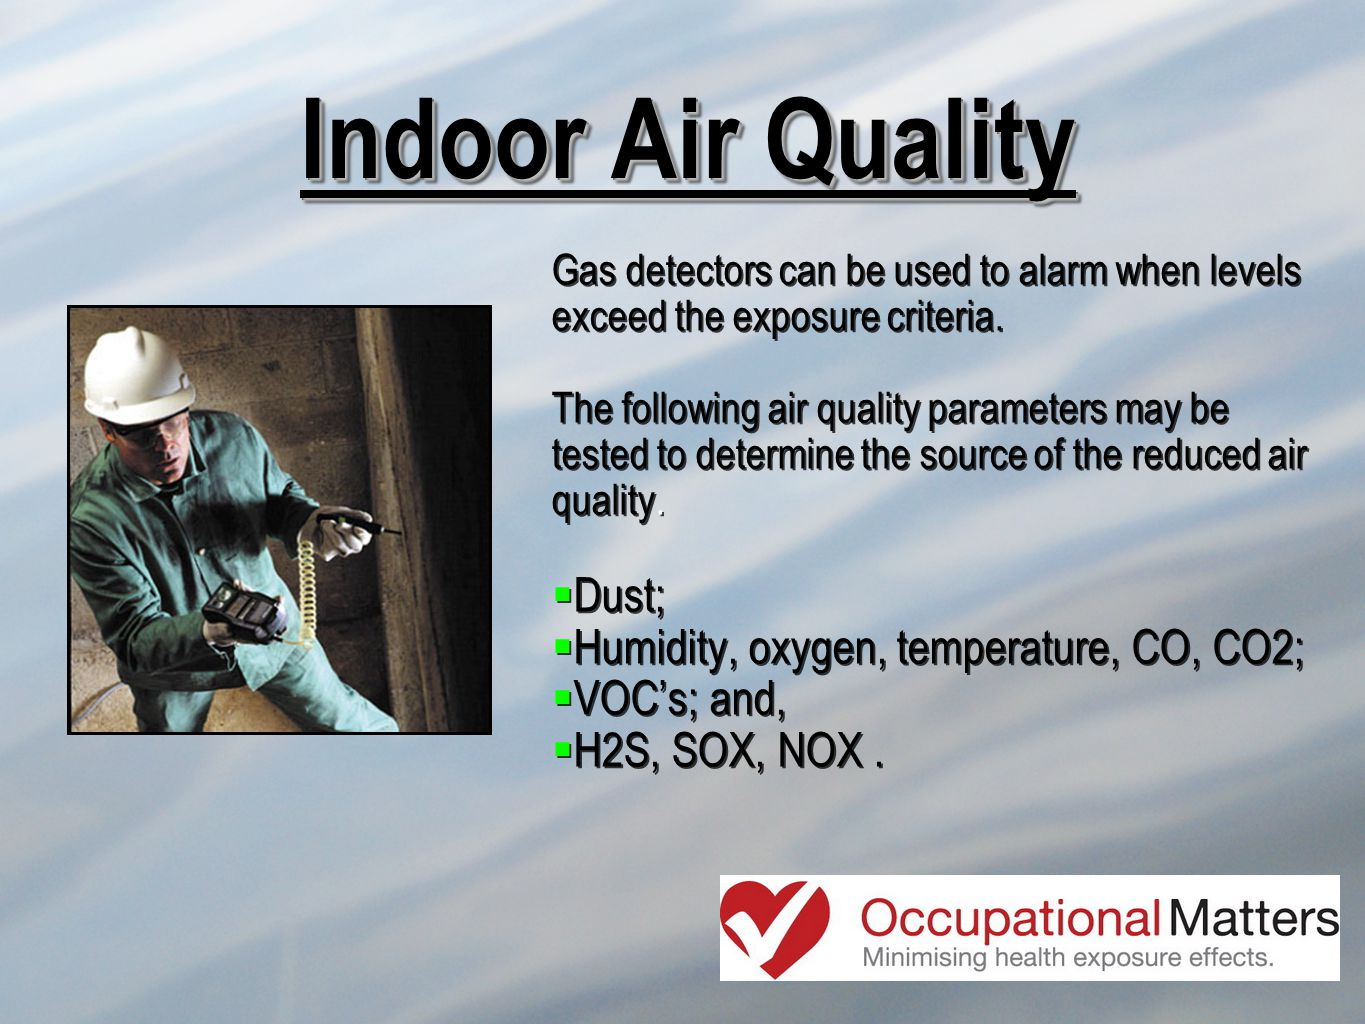 Indoor Air Quality Gas detectors can be used to alarm when levels exceed the exposure criteria.